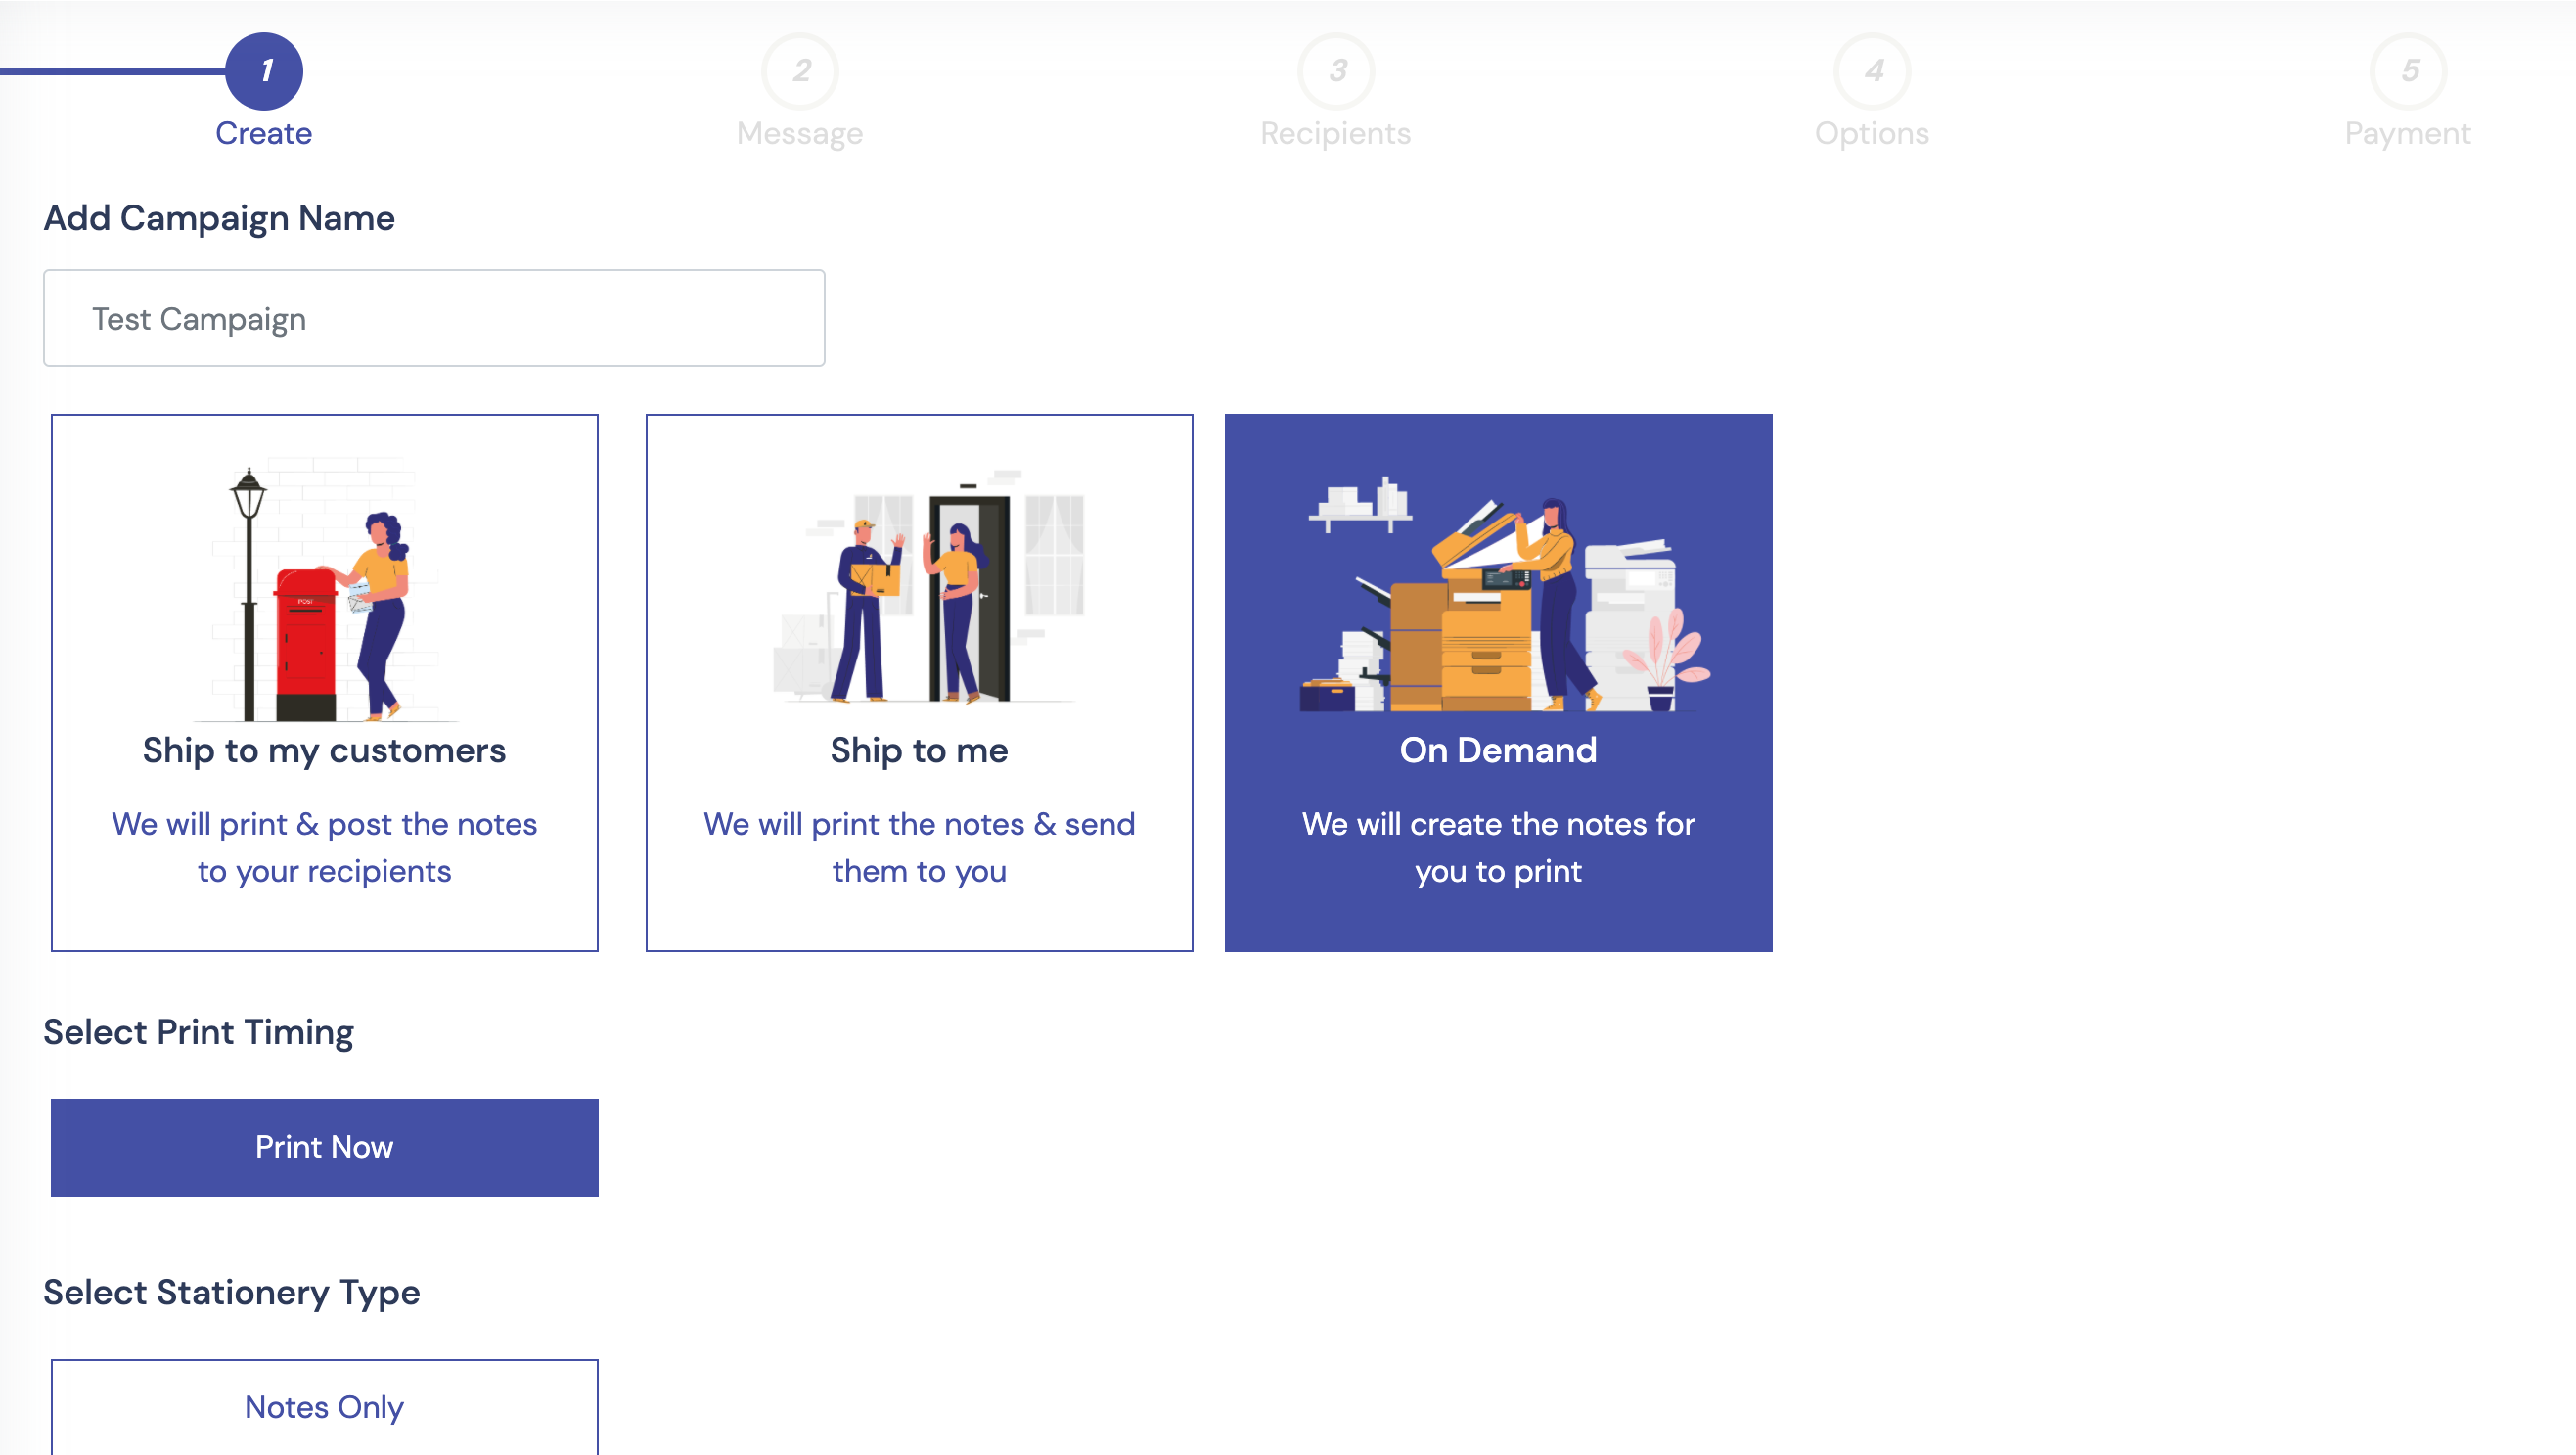 Select 'On Demand' when starting to create your campaign.